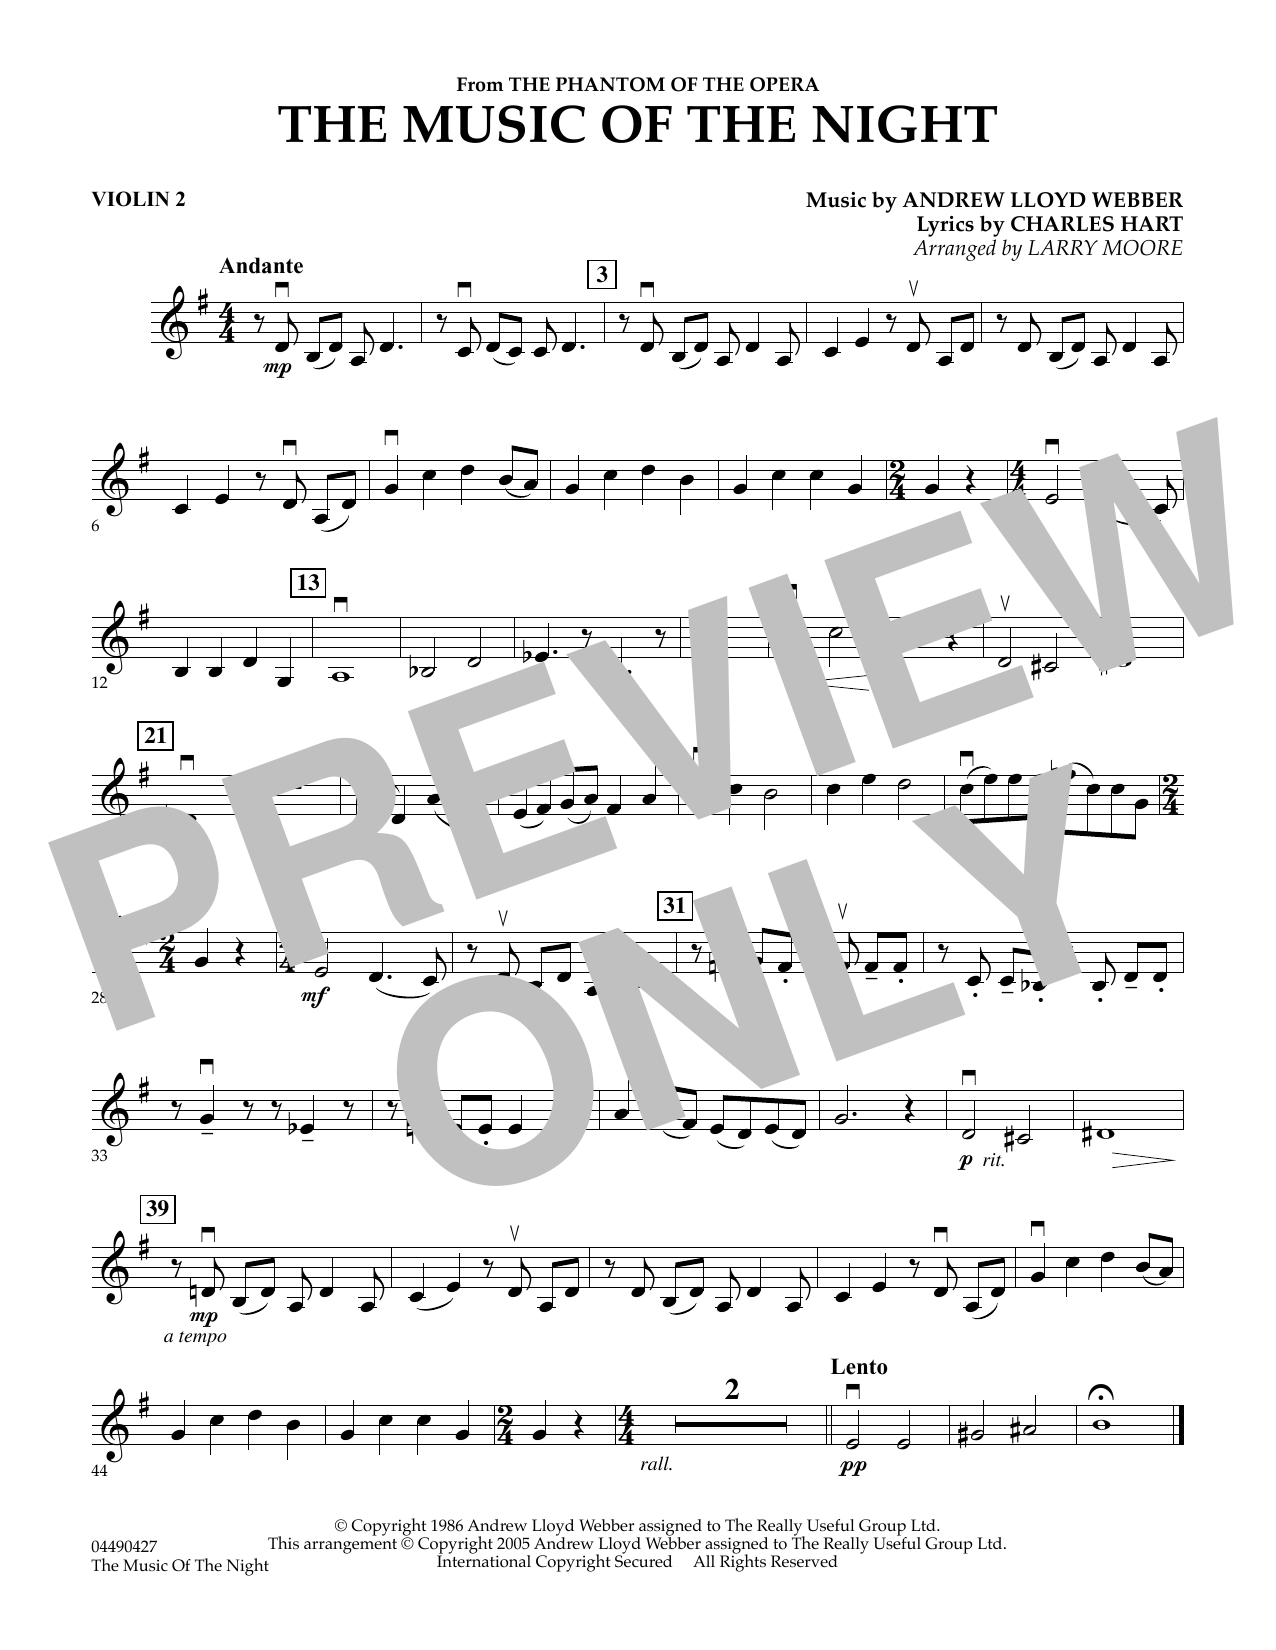 Larry Moore The Music of the Night (from The Phantom of the Opera) - Violin 2 sheet music notes and chords. Download Printable PDF.